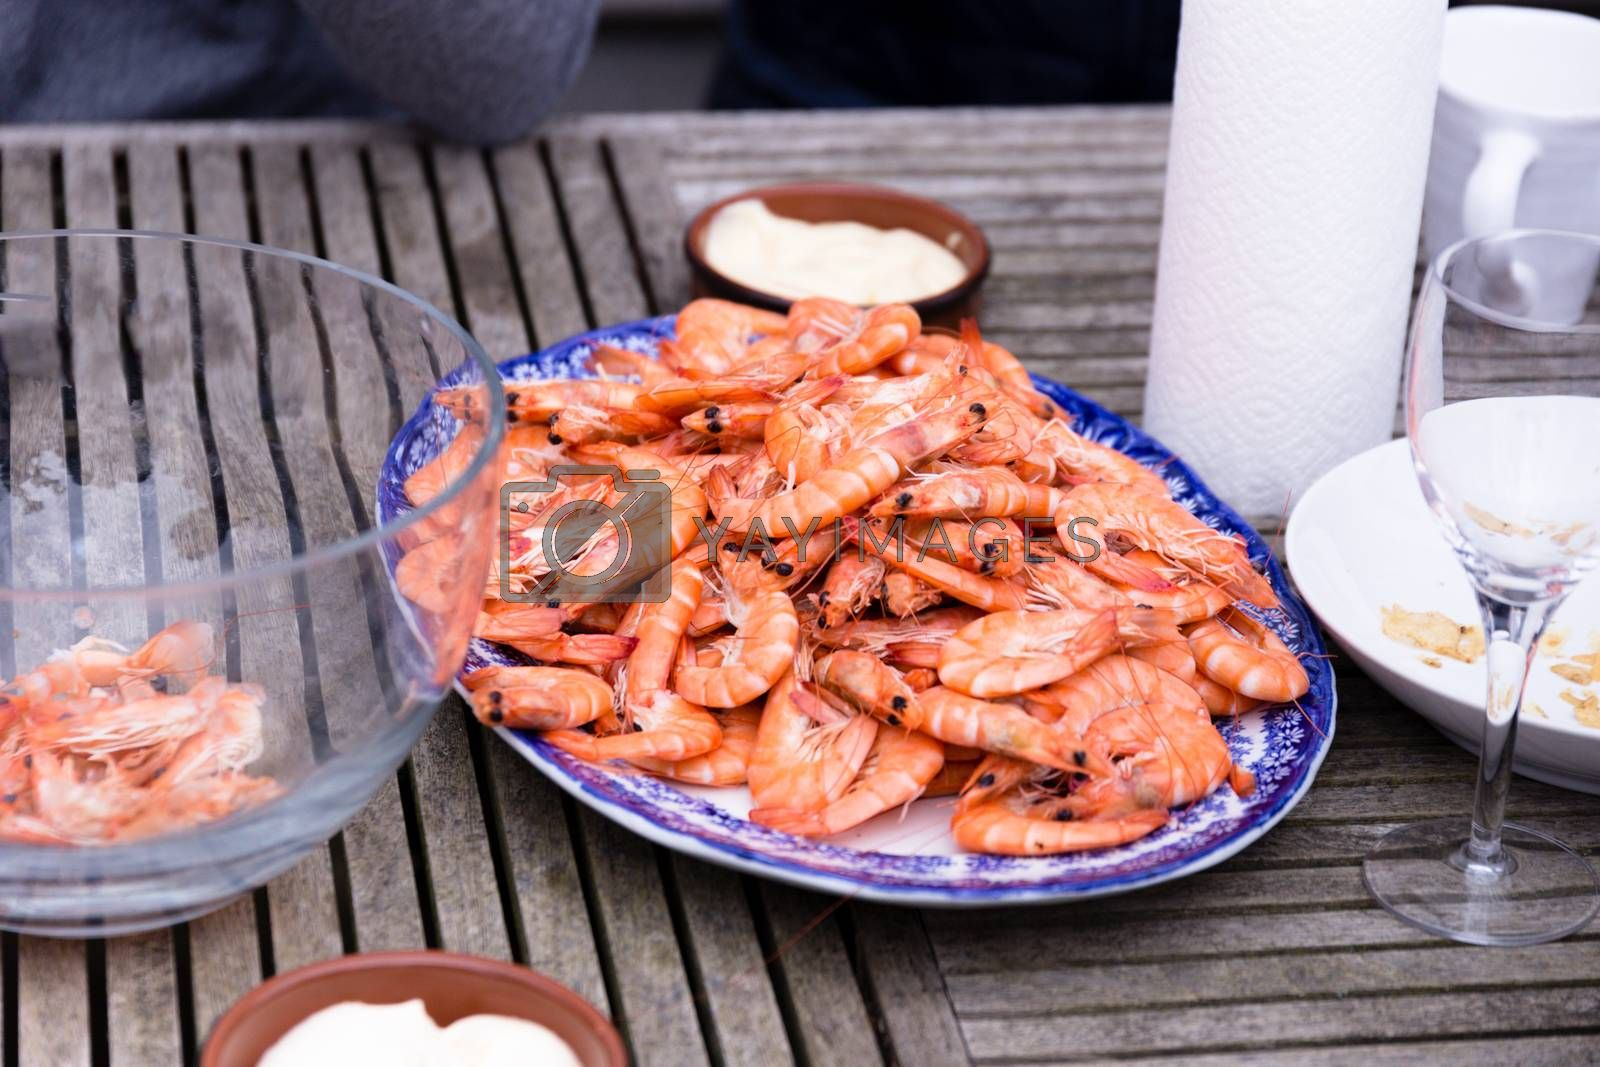 Friends aharing a plate of prawns at a social gathering